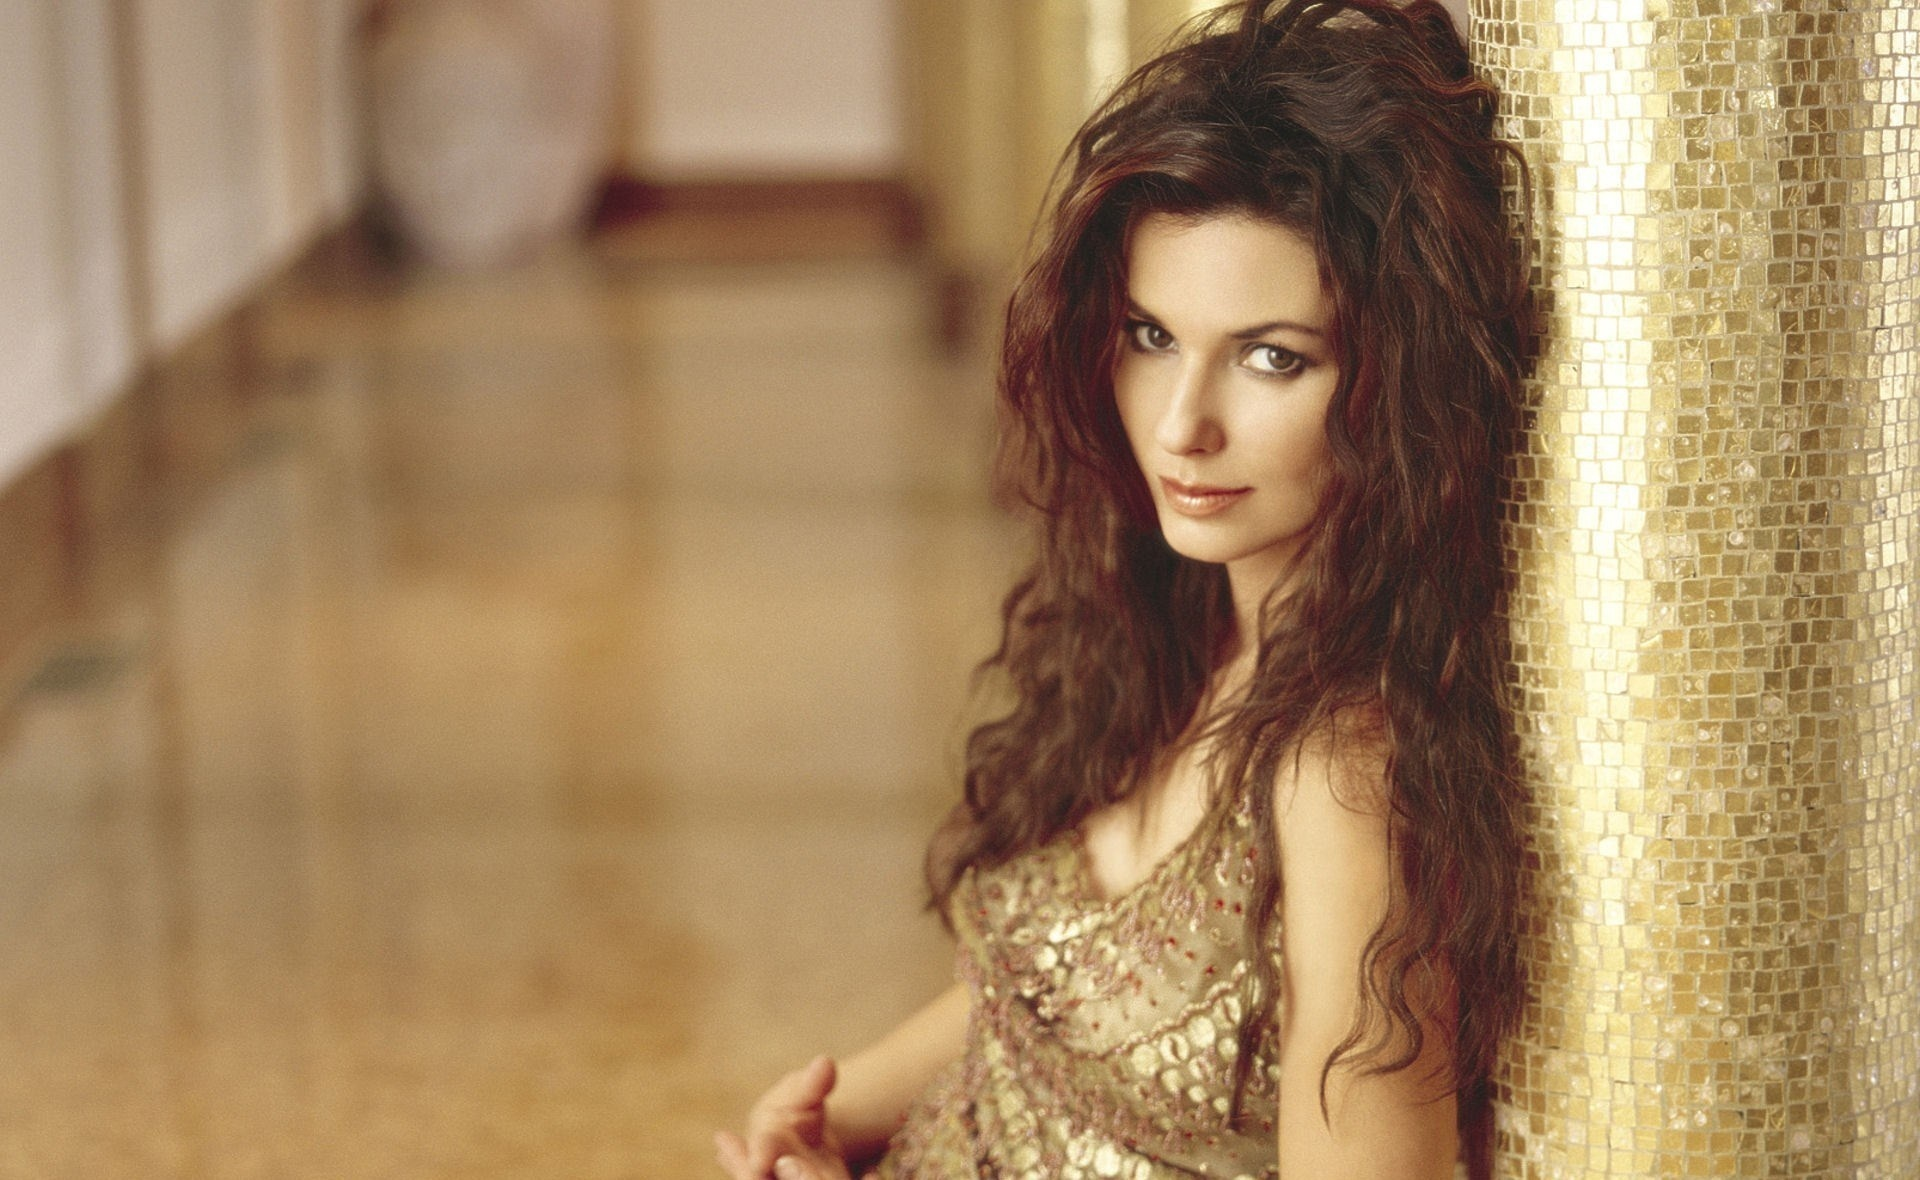 shania twain songs mp3 download free